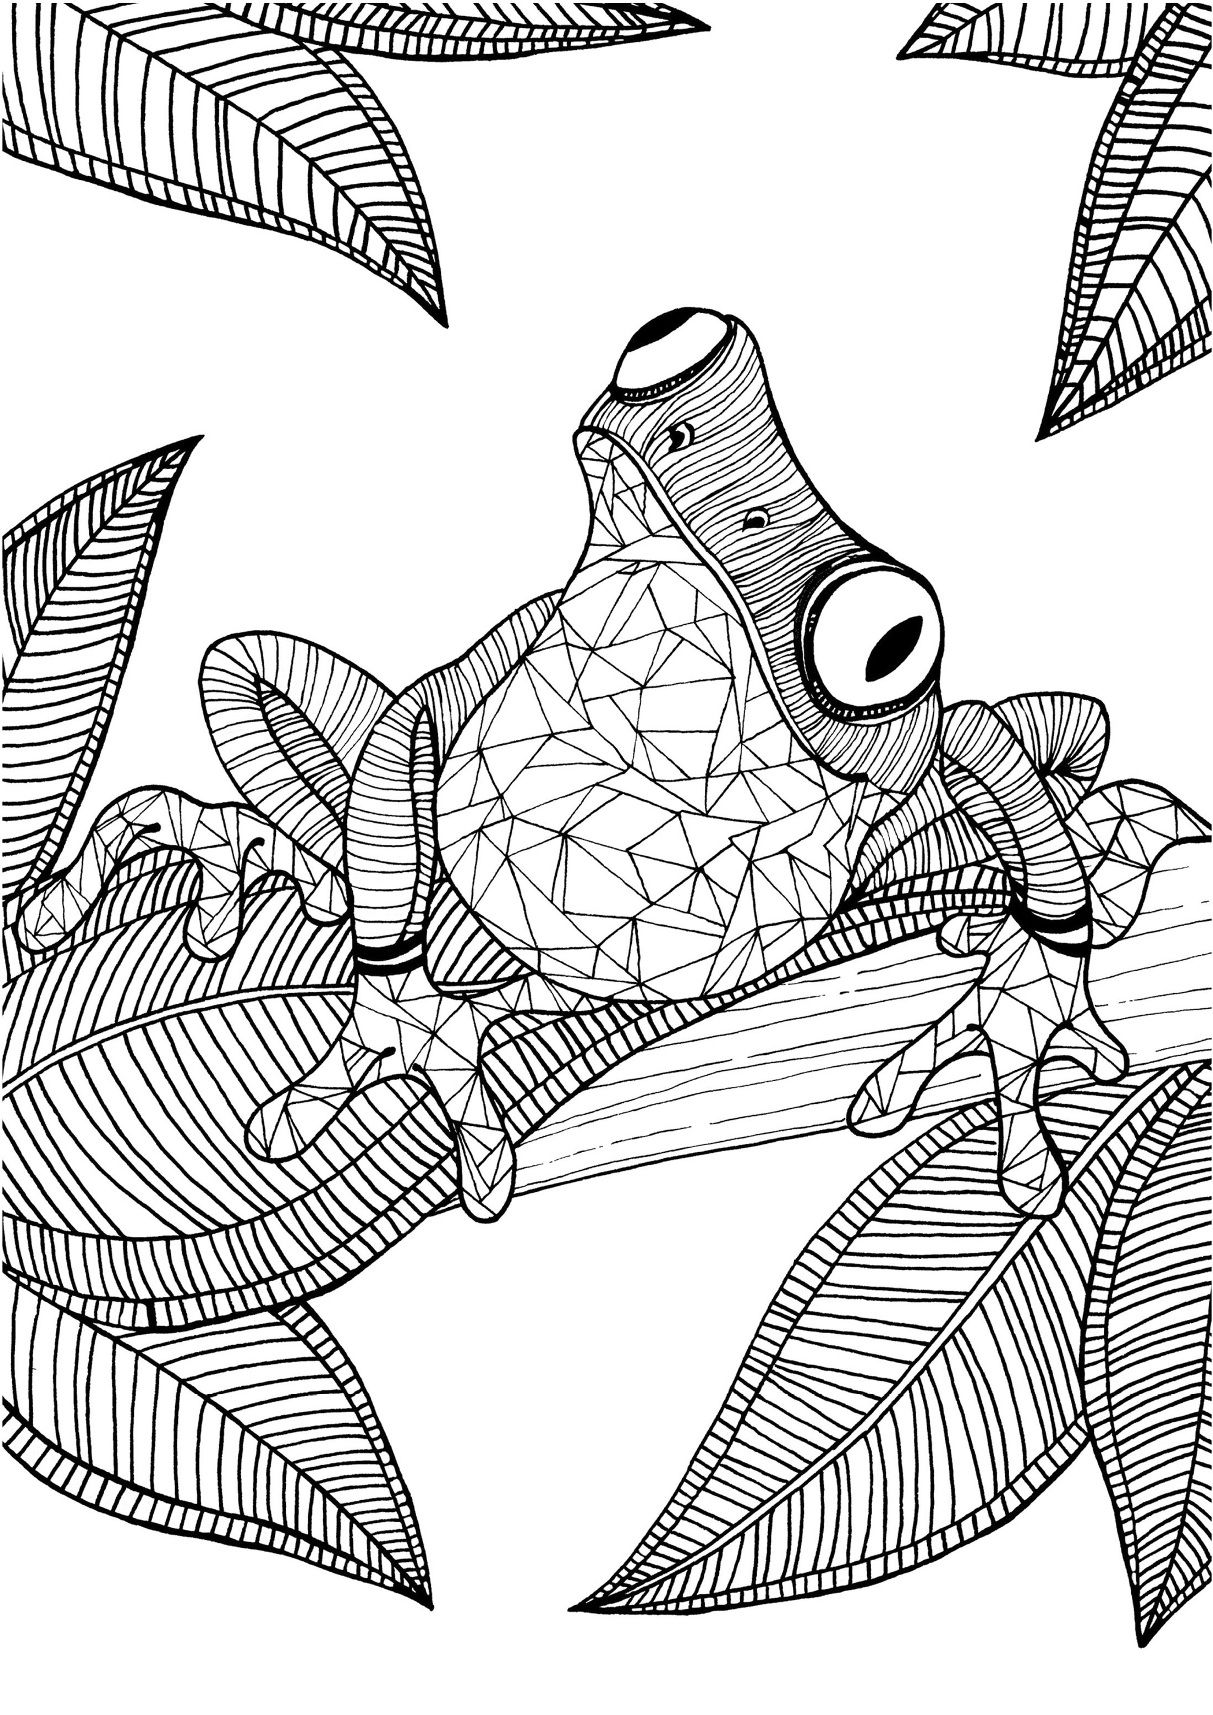 Frog adult colouring page : Colouring In Sheets - Art ... | free online coloring pages for adults animals